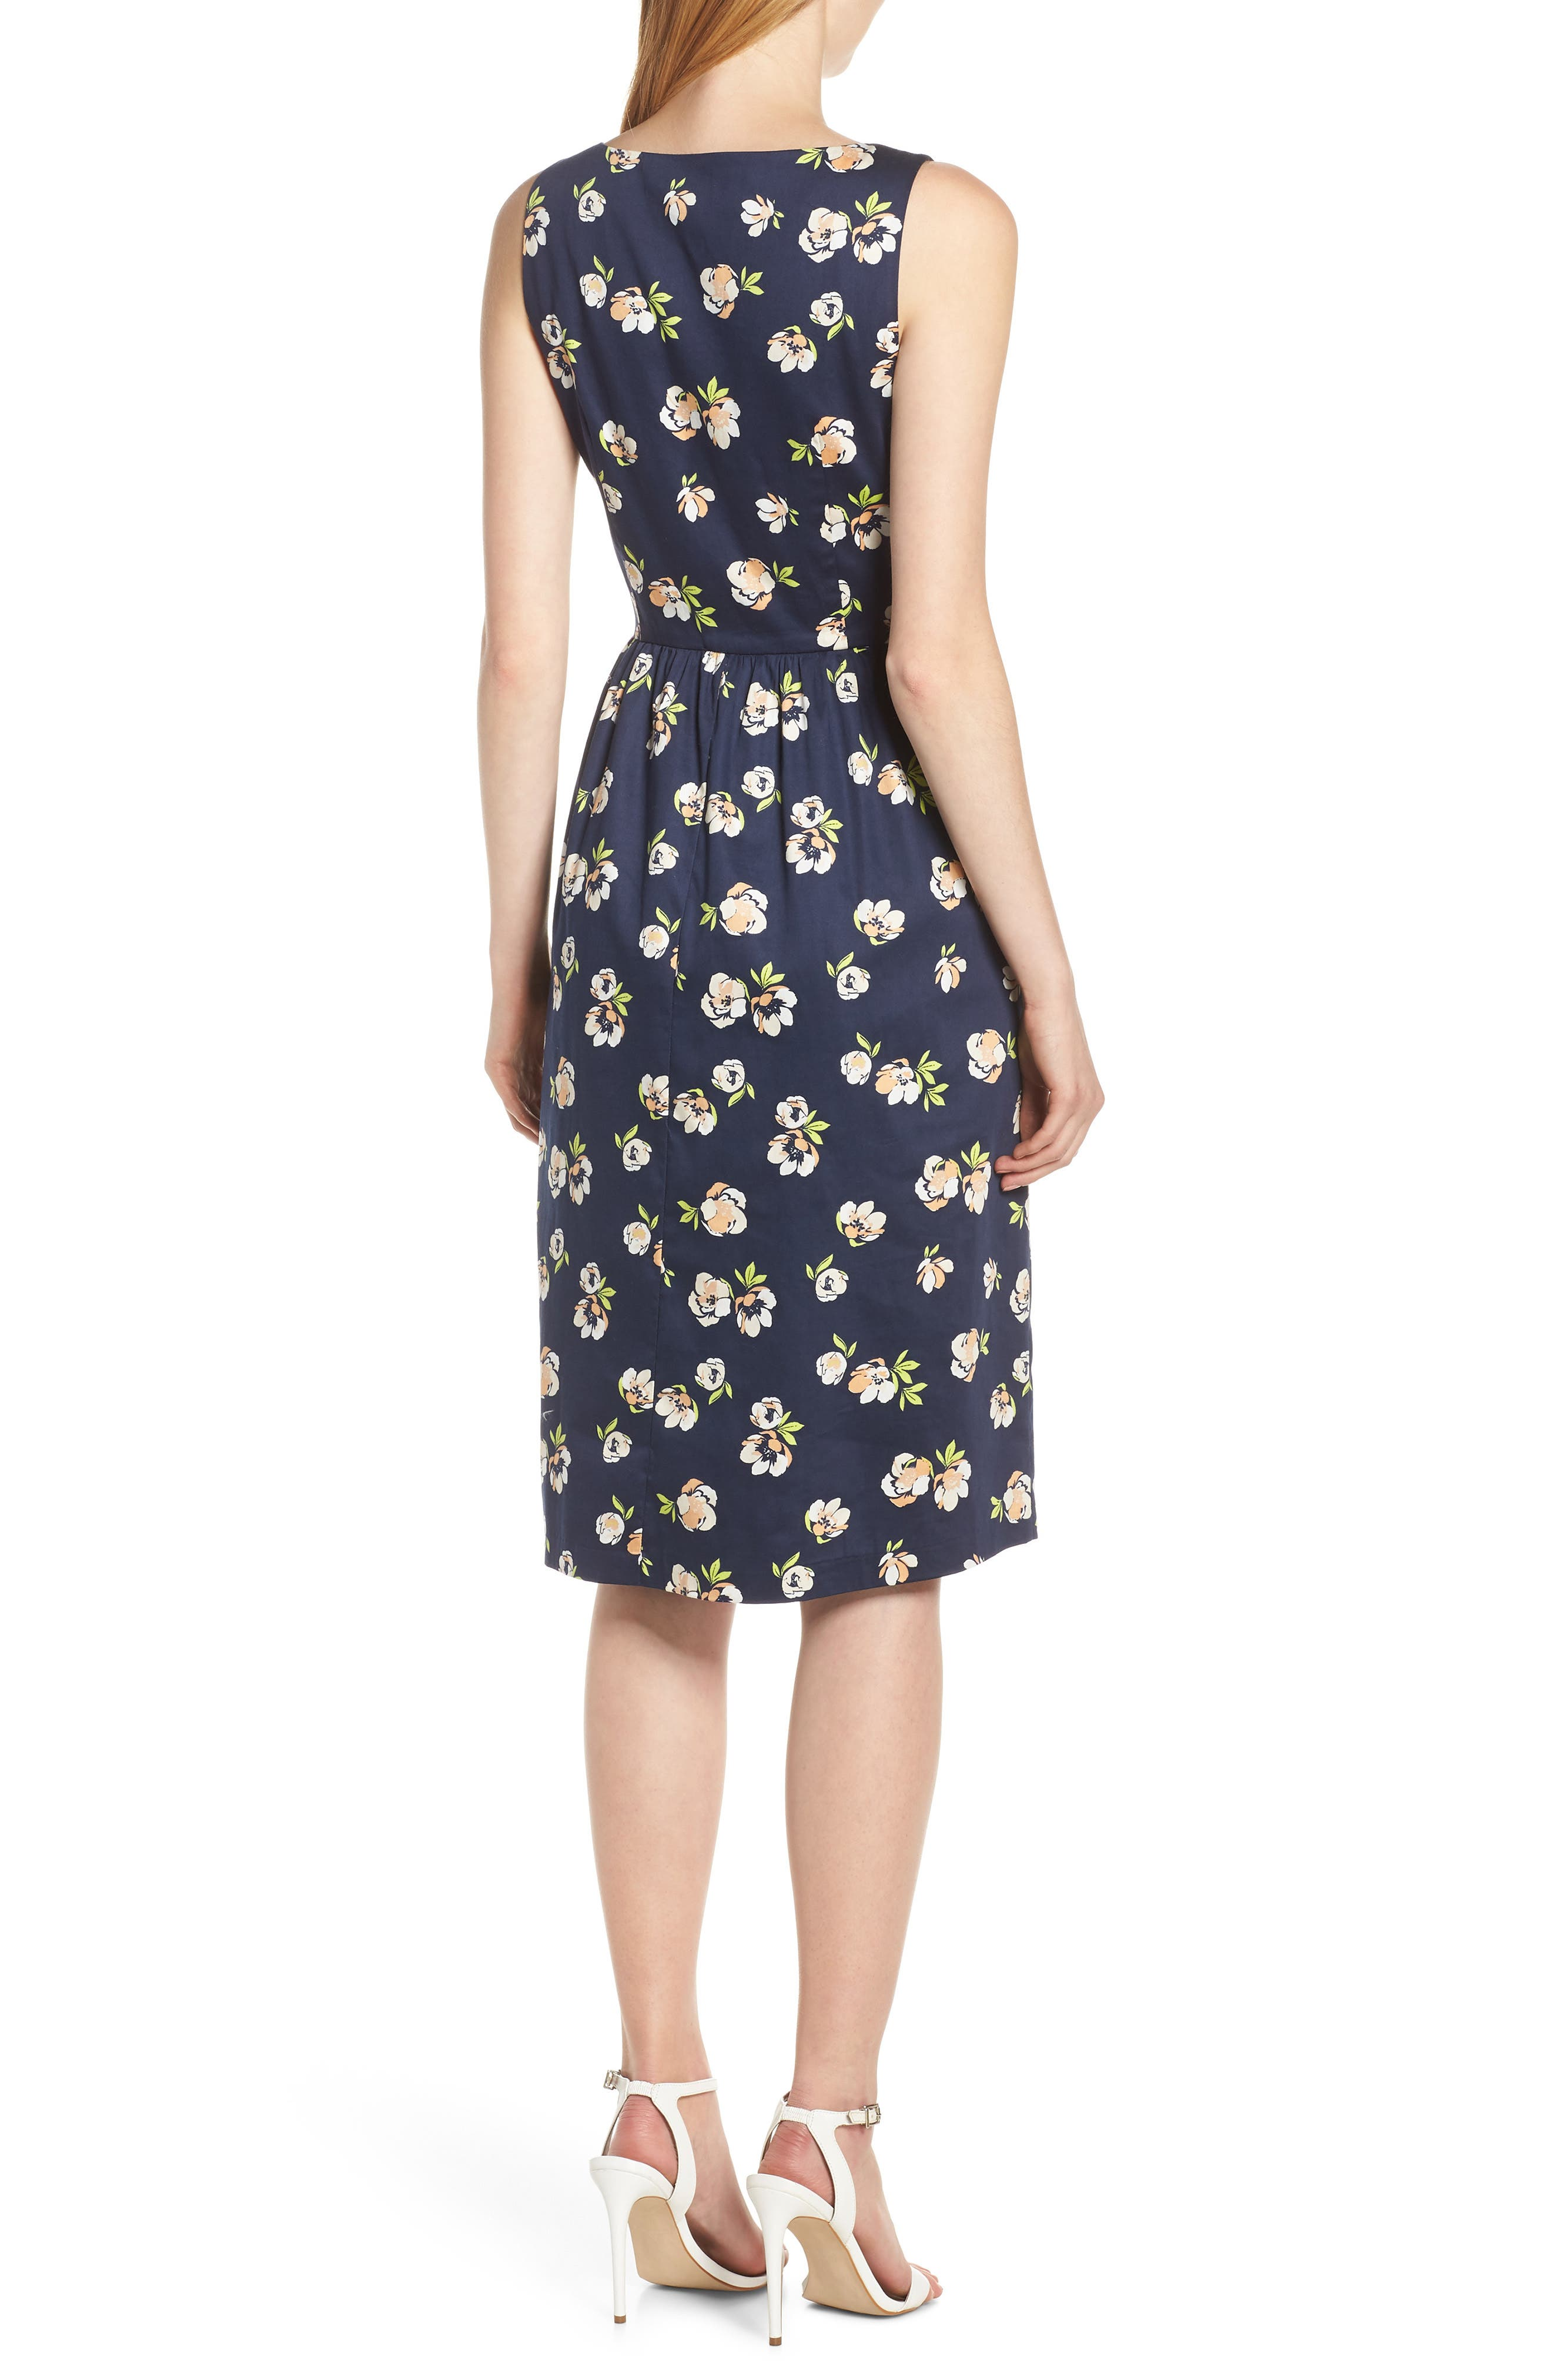 CHARLES HENRY, Sleeveless Fit & Flare Dress, Alternate thumbnail 2, color, NAVY PEACH FLORAL